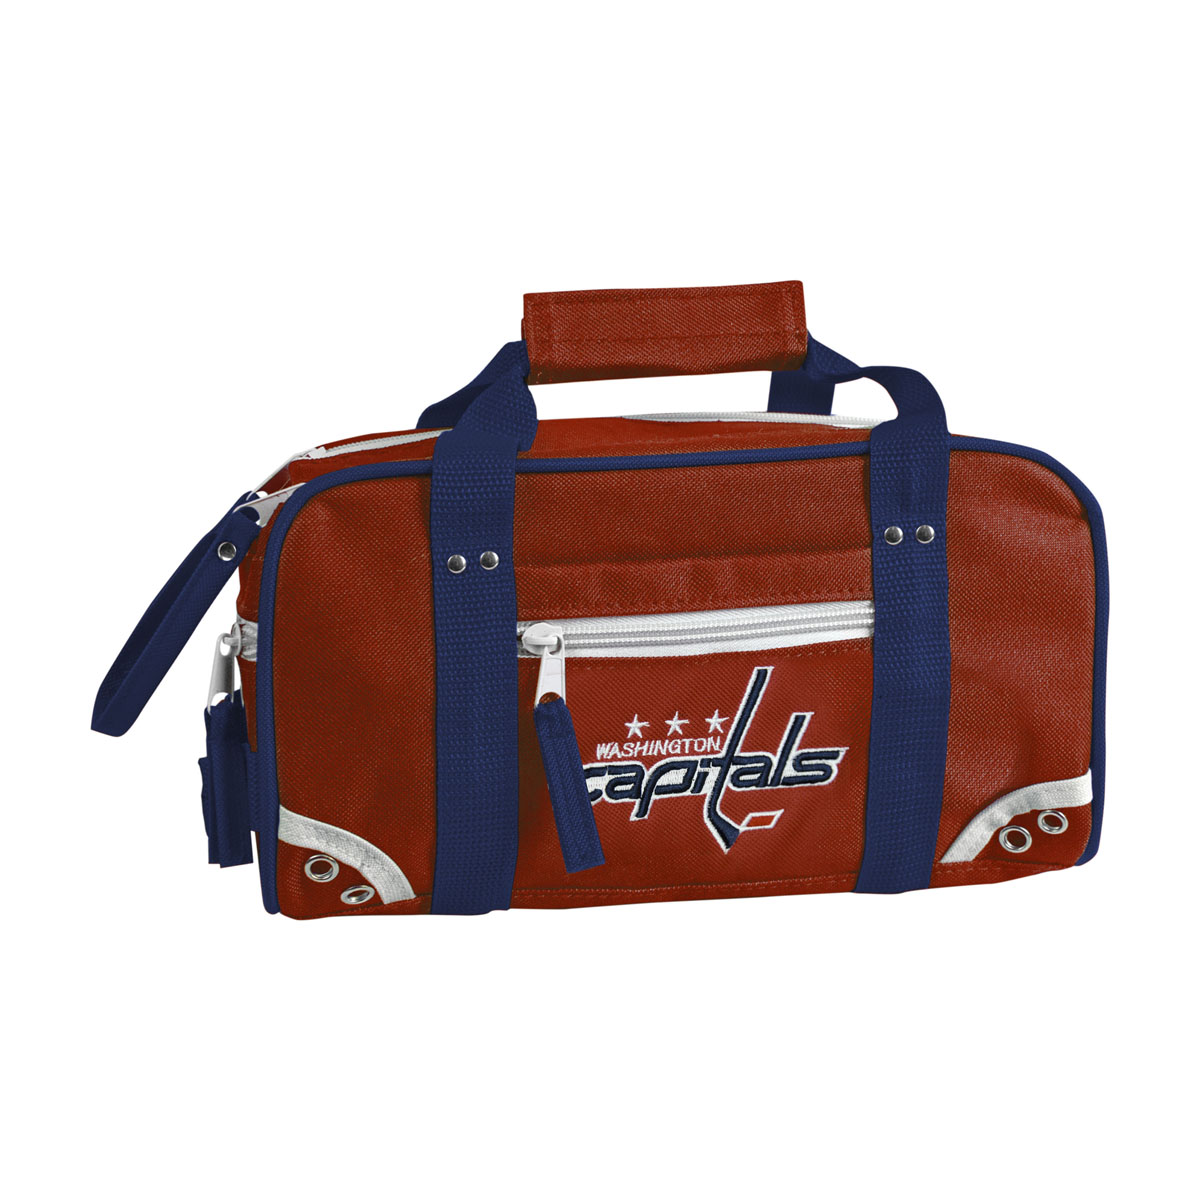 Мини-баул NHL Washington Capitals, цвет: красно-синий. 5л